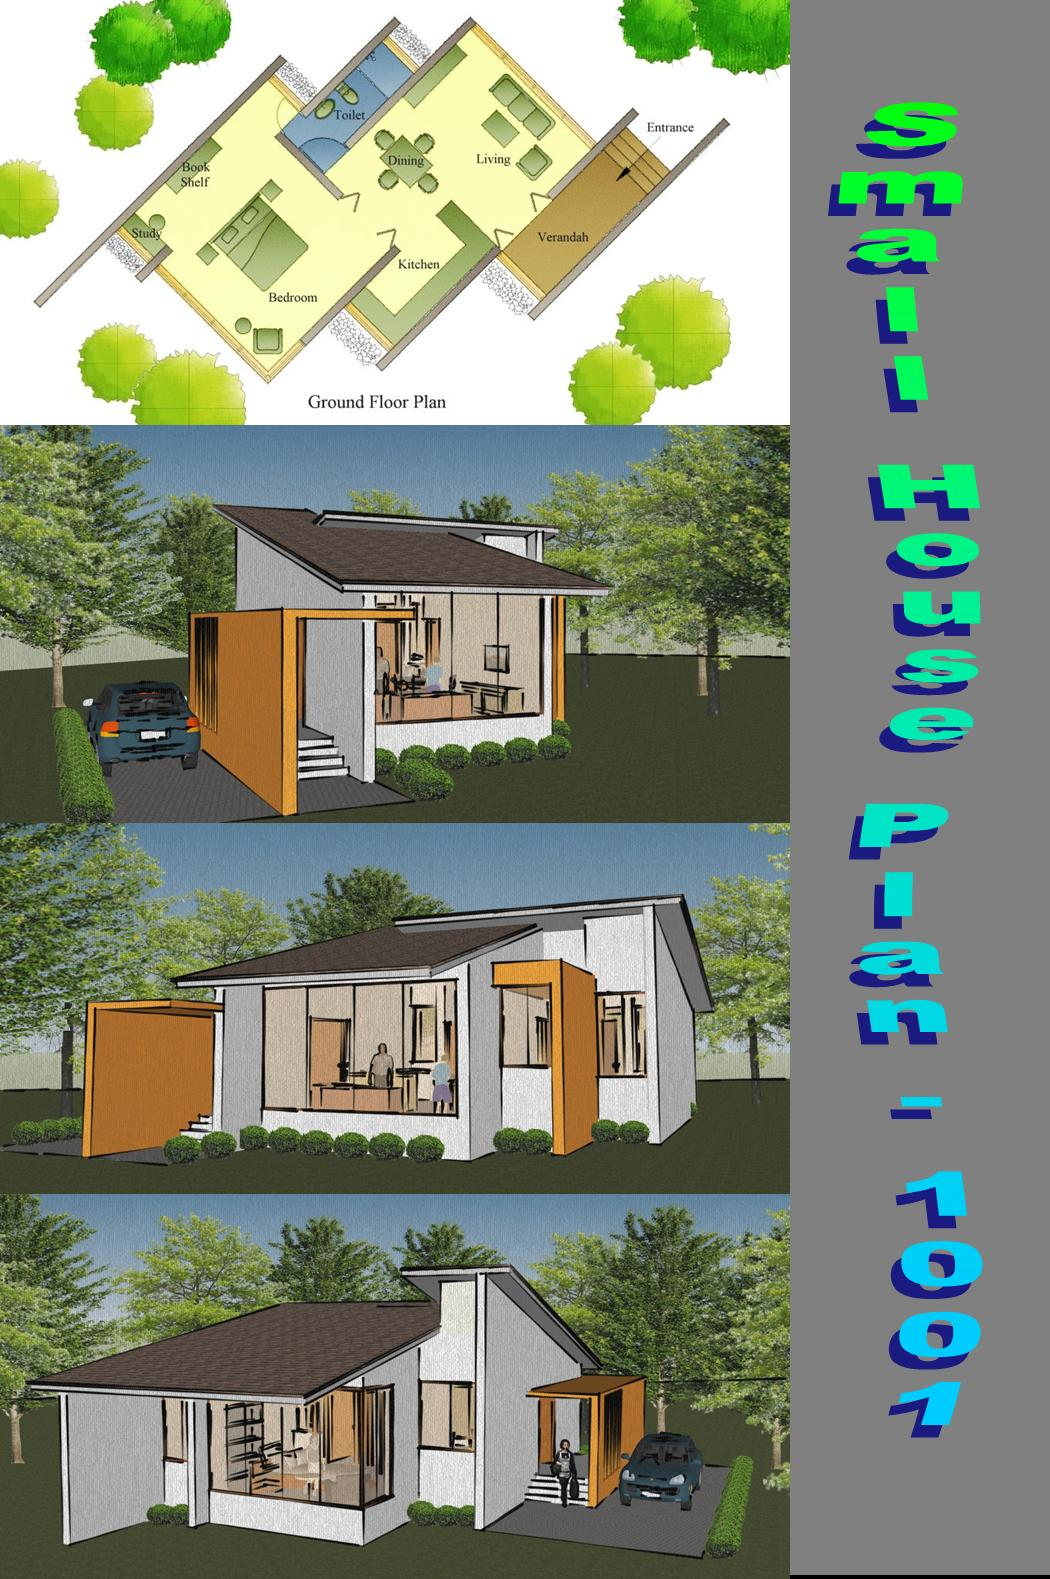 Home plans in india 5 best small home plans from for Www indian home design plan com